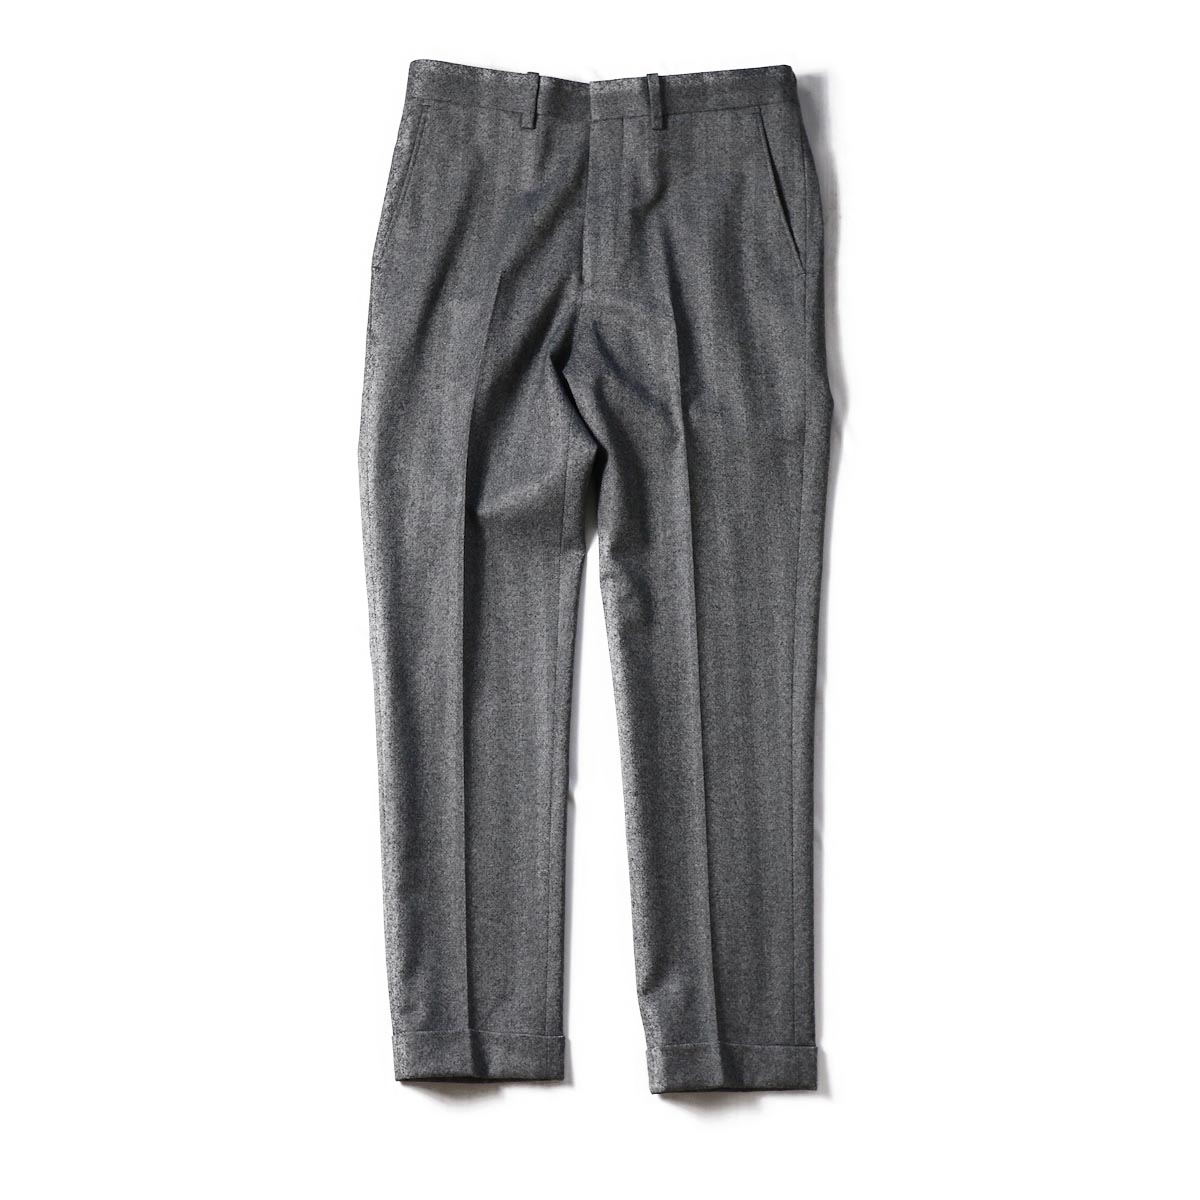 N.HOOLYWOOD /182-PT02-027-pieces HB SLIM SLACKS -Gray